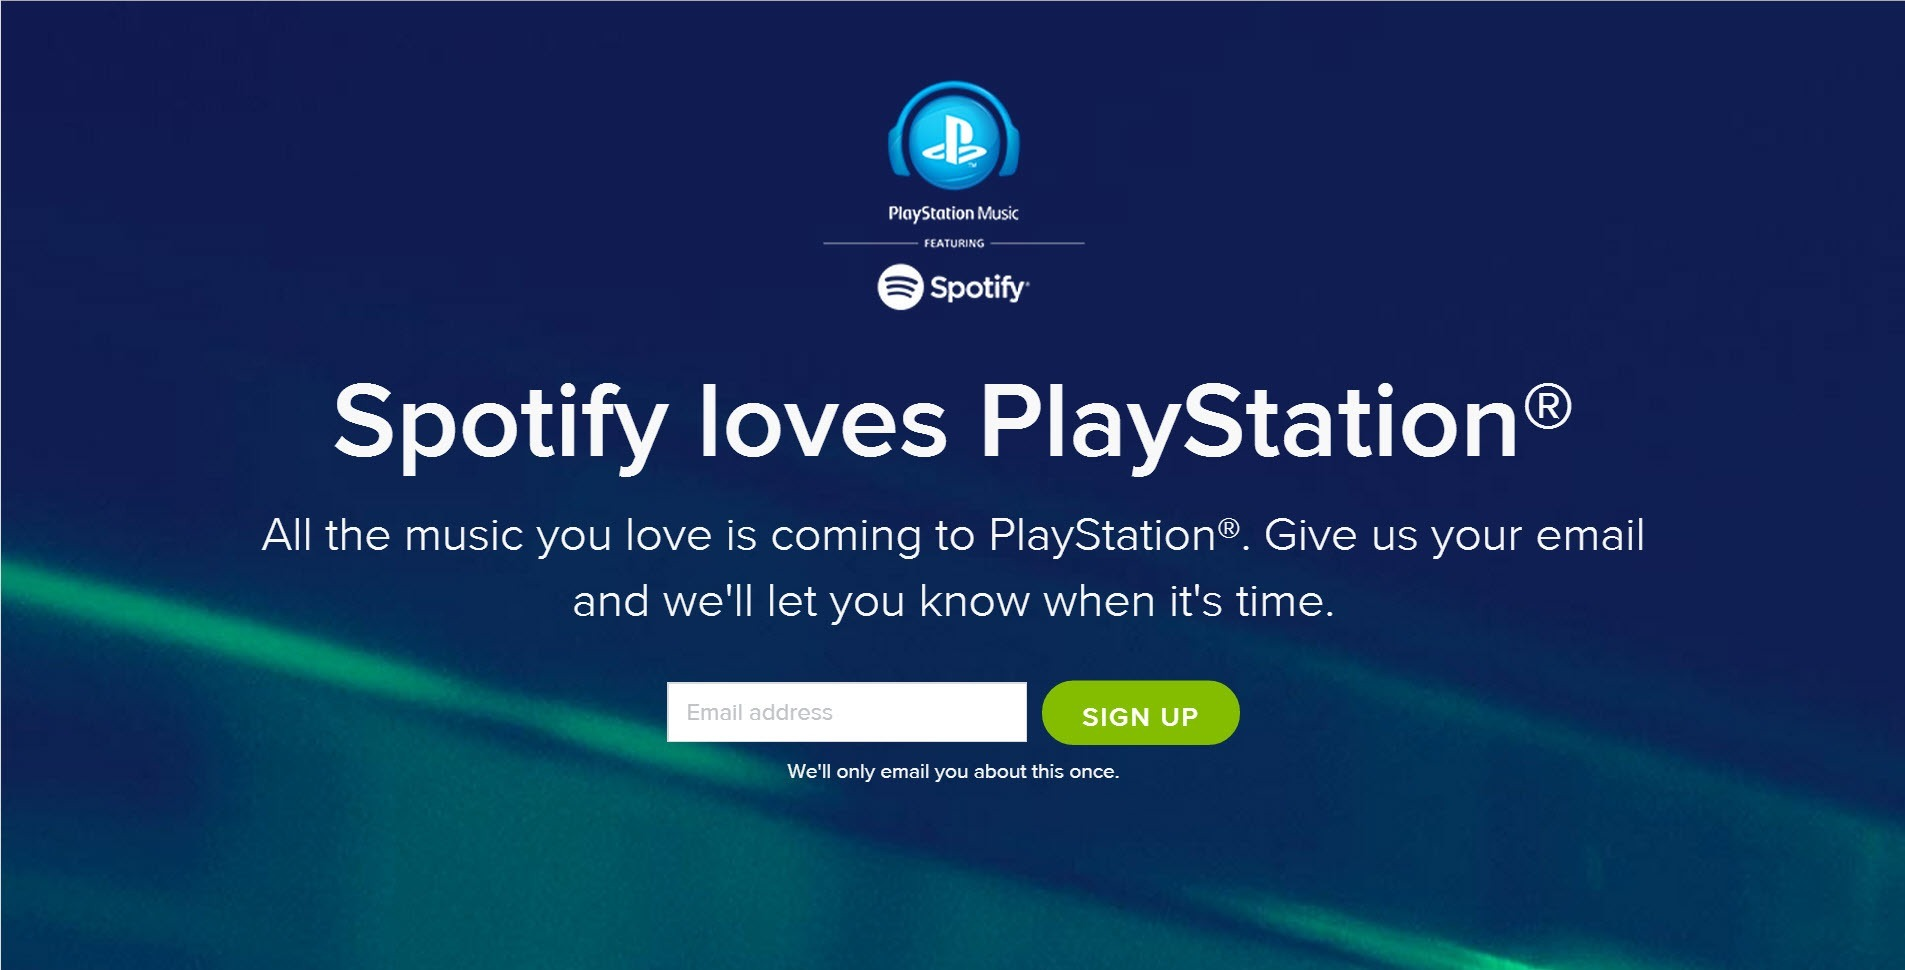 playstation music (1)